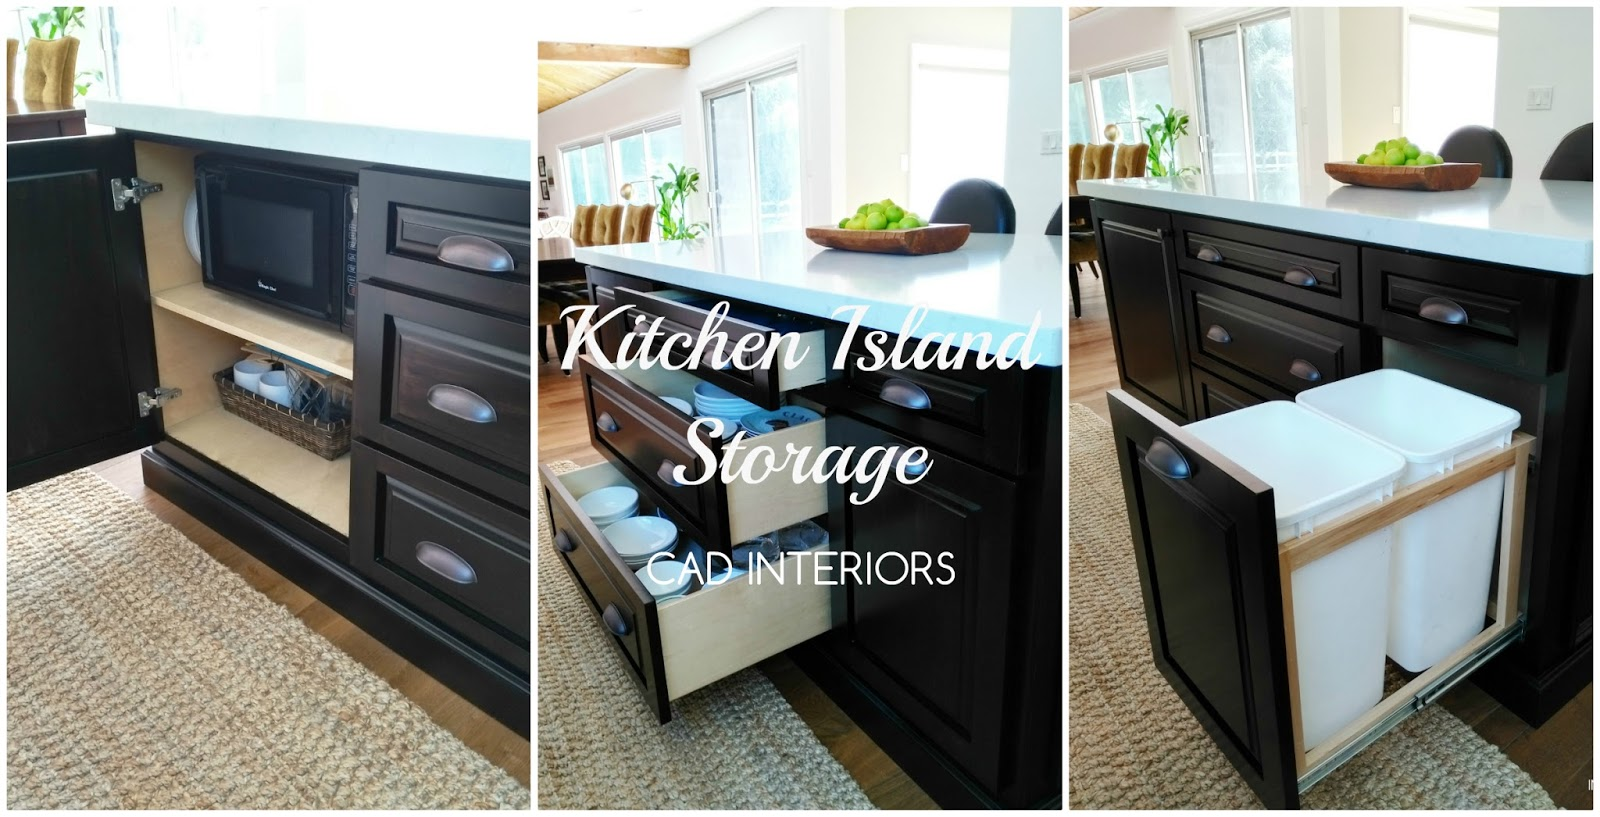 home renovation improvement classic modern farmhouse transitional kitchen interior design cabinets drawers storage